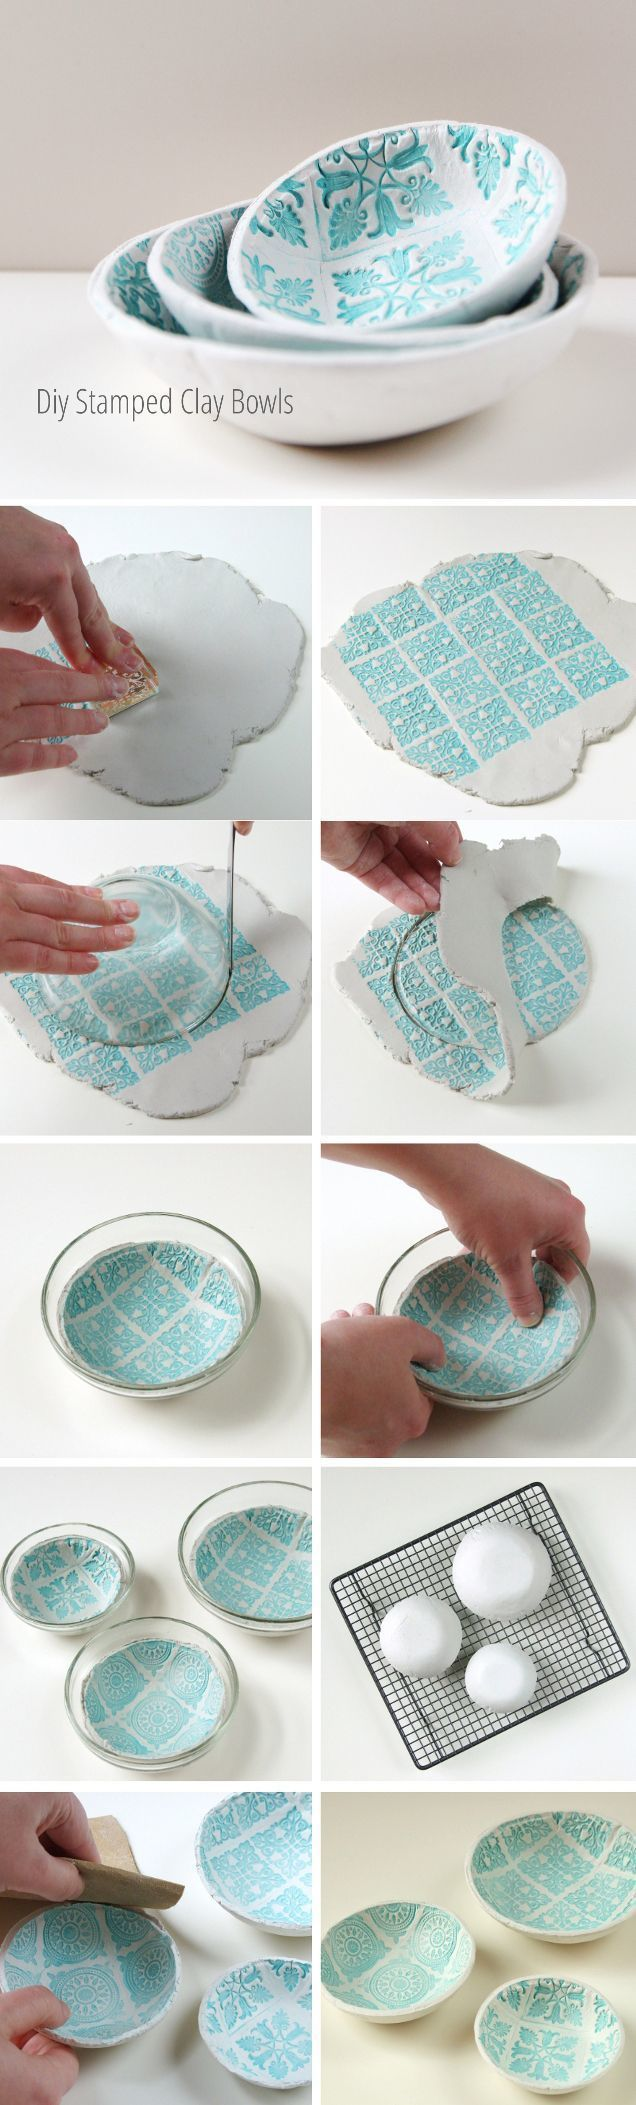 10 Easy DIY Gift Ideas Your Friends Will Actually Like… Especially #6. - http://www.lifebuzz.com/diy-gifts/